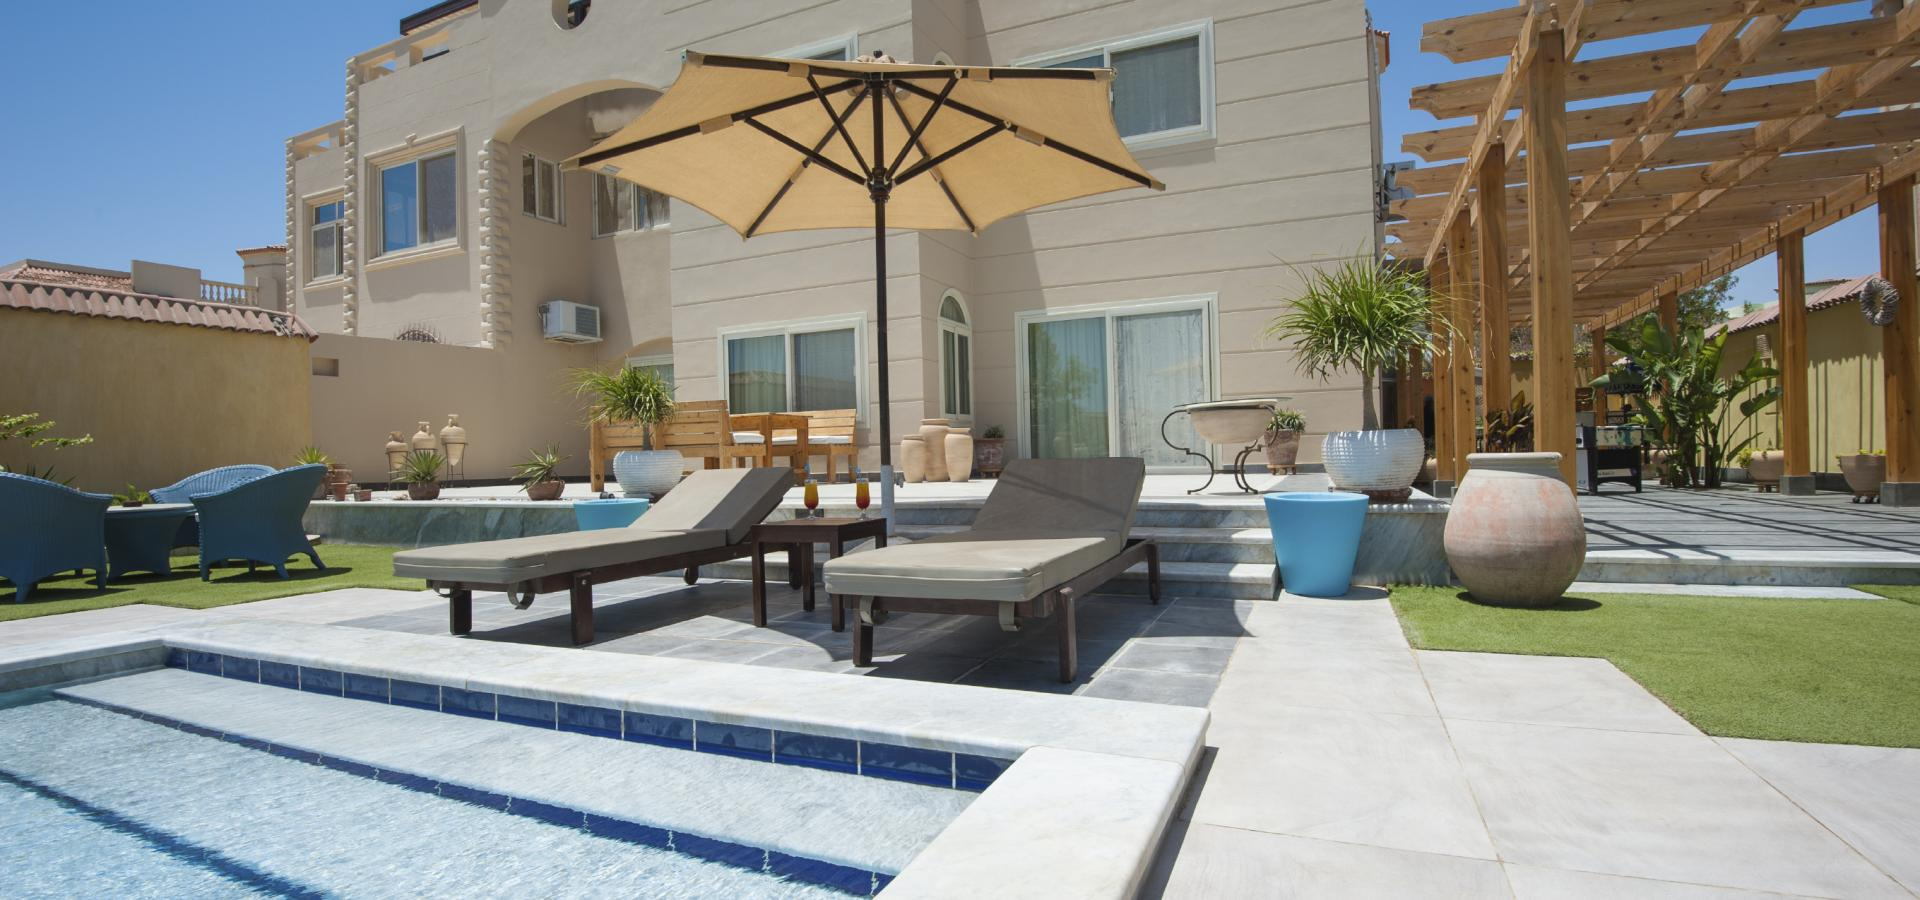 Home element property services - Swimming pool management software ...